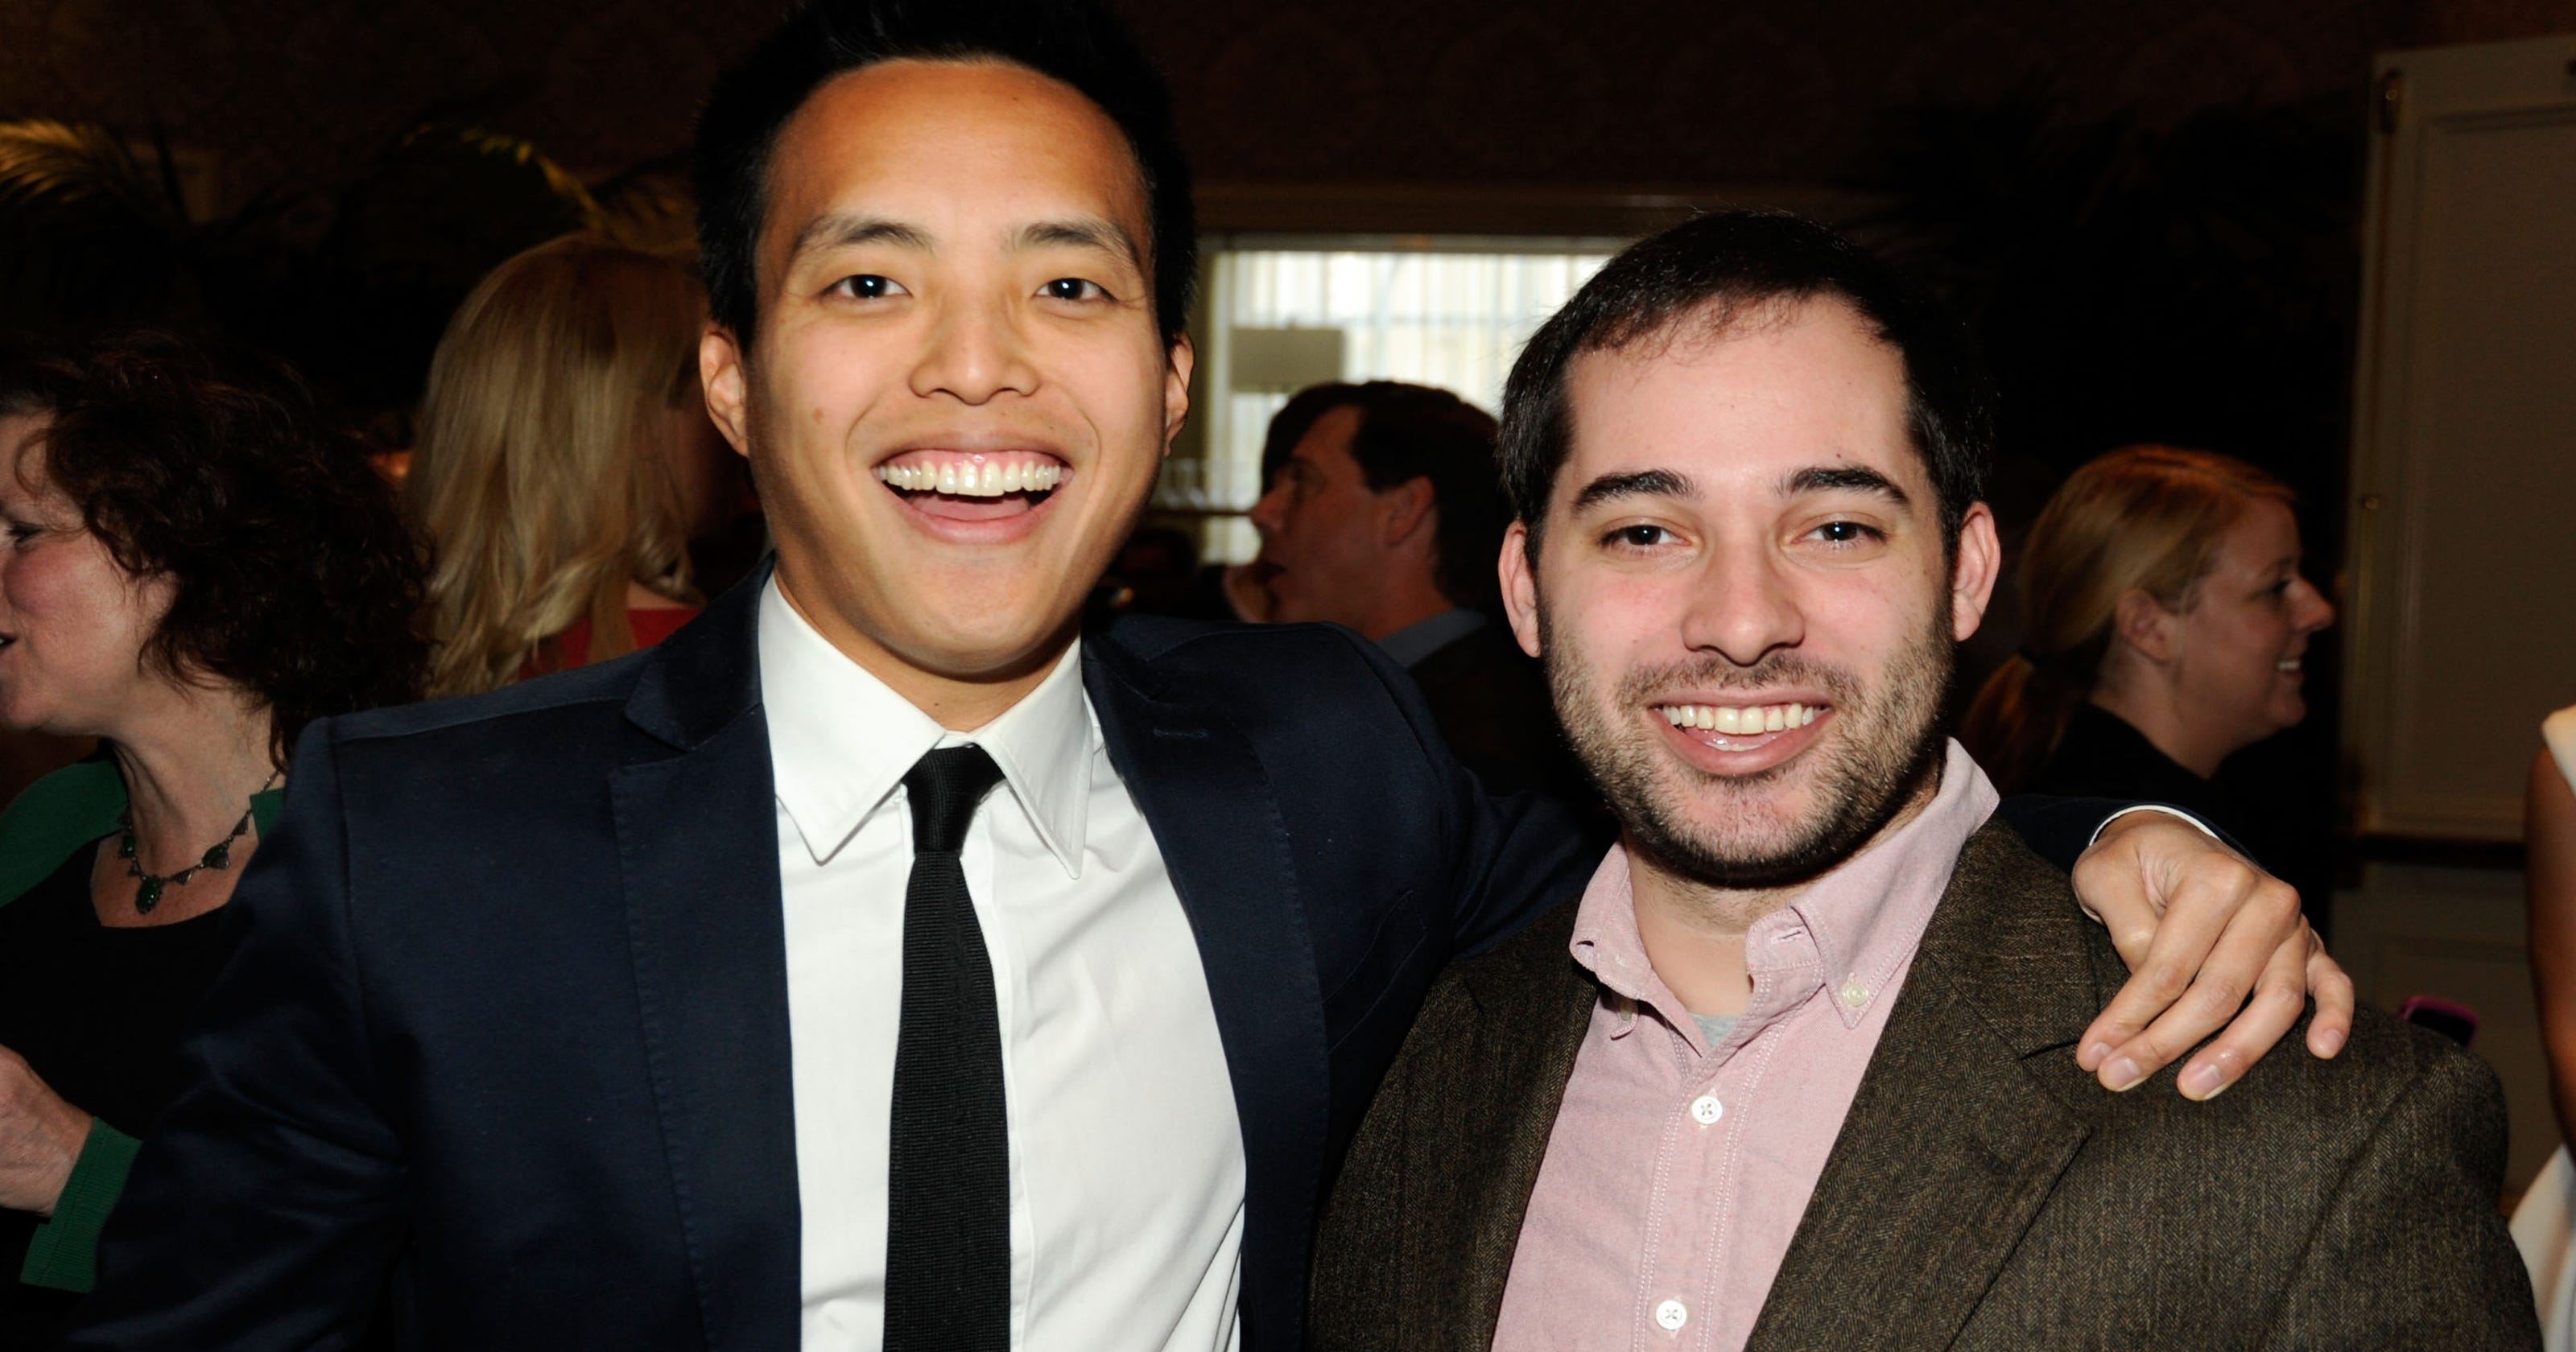 Parks And Recreation Writer Producer Harris Wittels Dies At 30 Radio Wave Diagram Http Hollywoodbollywood Co In Hoadmin